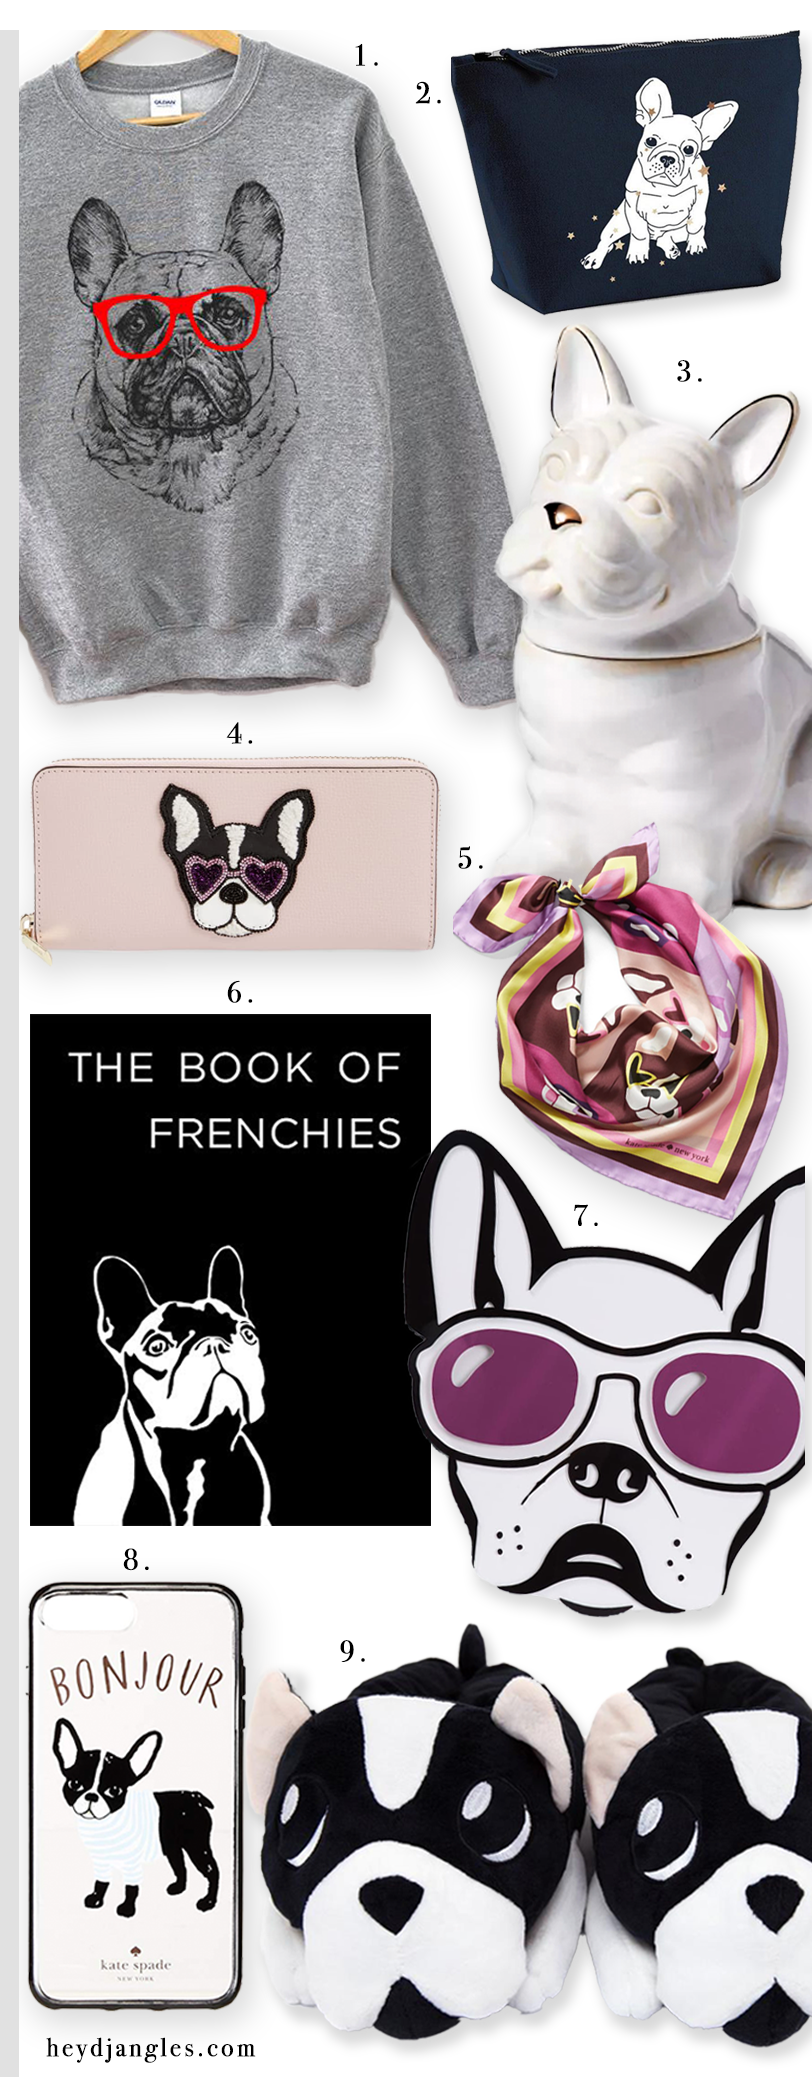 GIFT GUIDE: 9 Adorable French Bulldog Gifts for Her – heydjangles.com – French Bulldog accessories for humans, Frenchie gifts, Frenchie gift ideas, gift ideas for dog lovers. #doglover #frenchbulldoggifts